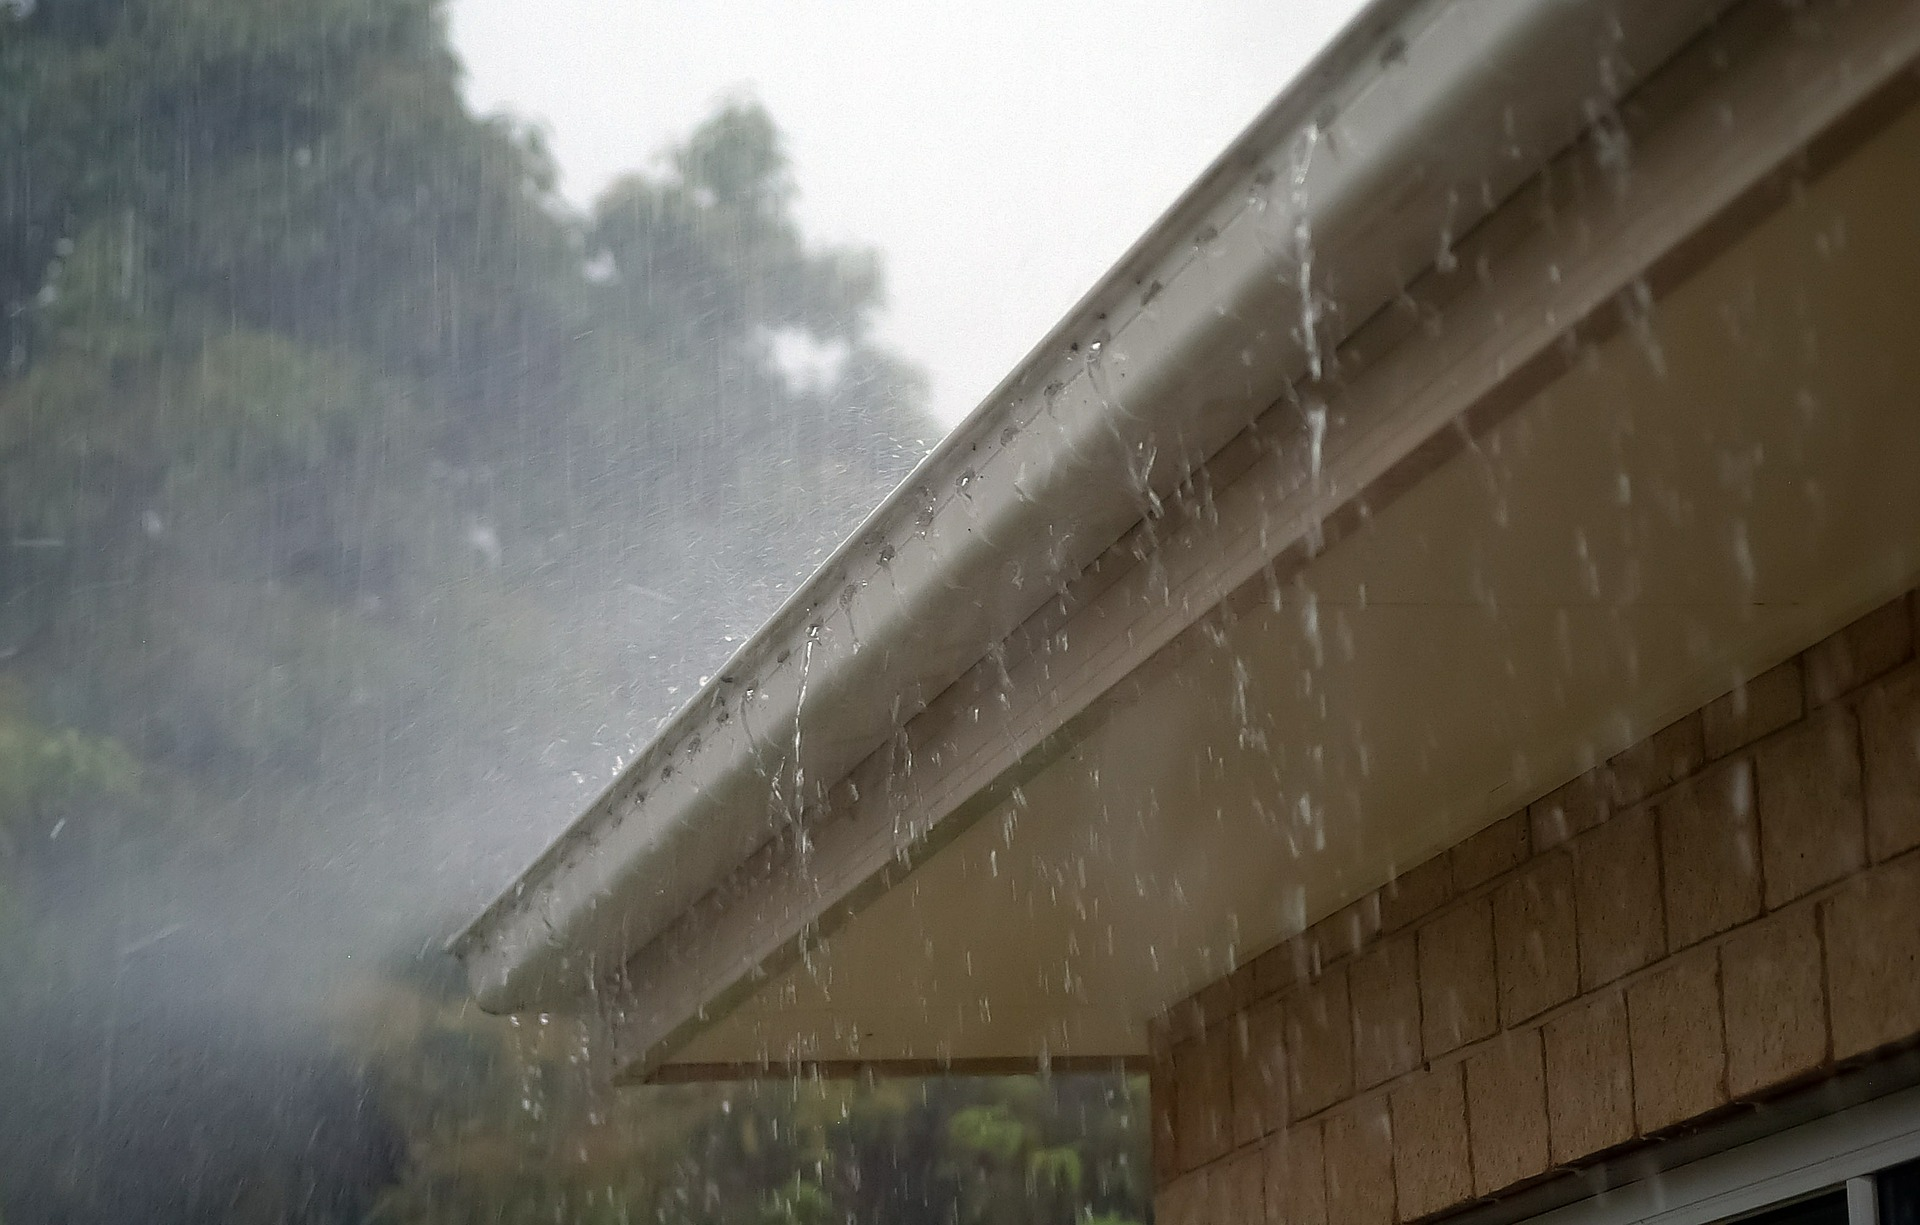 Guttering and Rainwater Sytems Newcastle